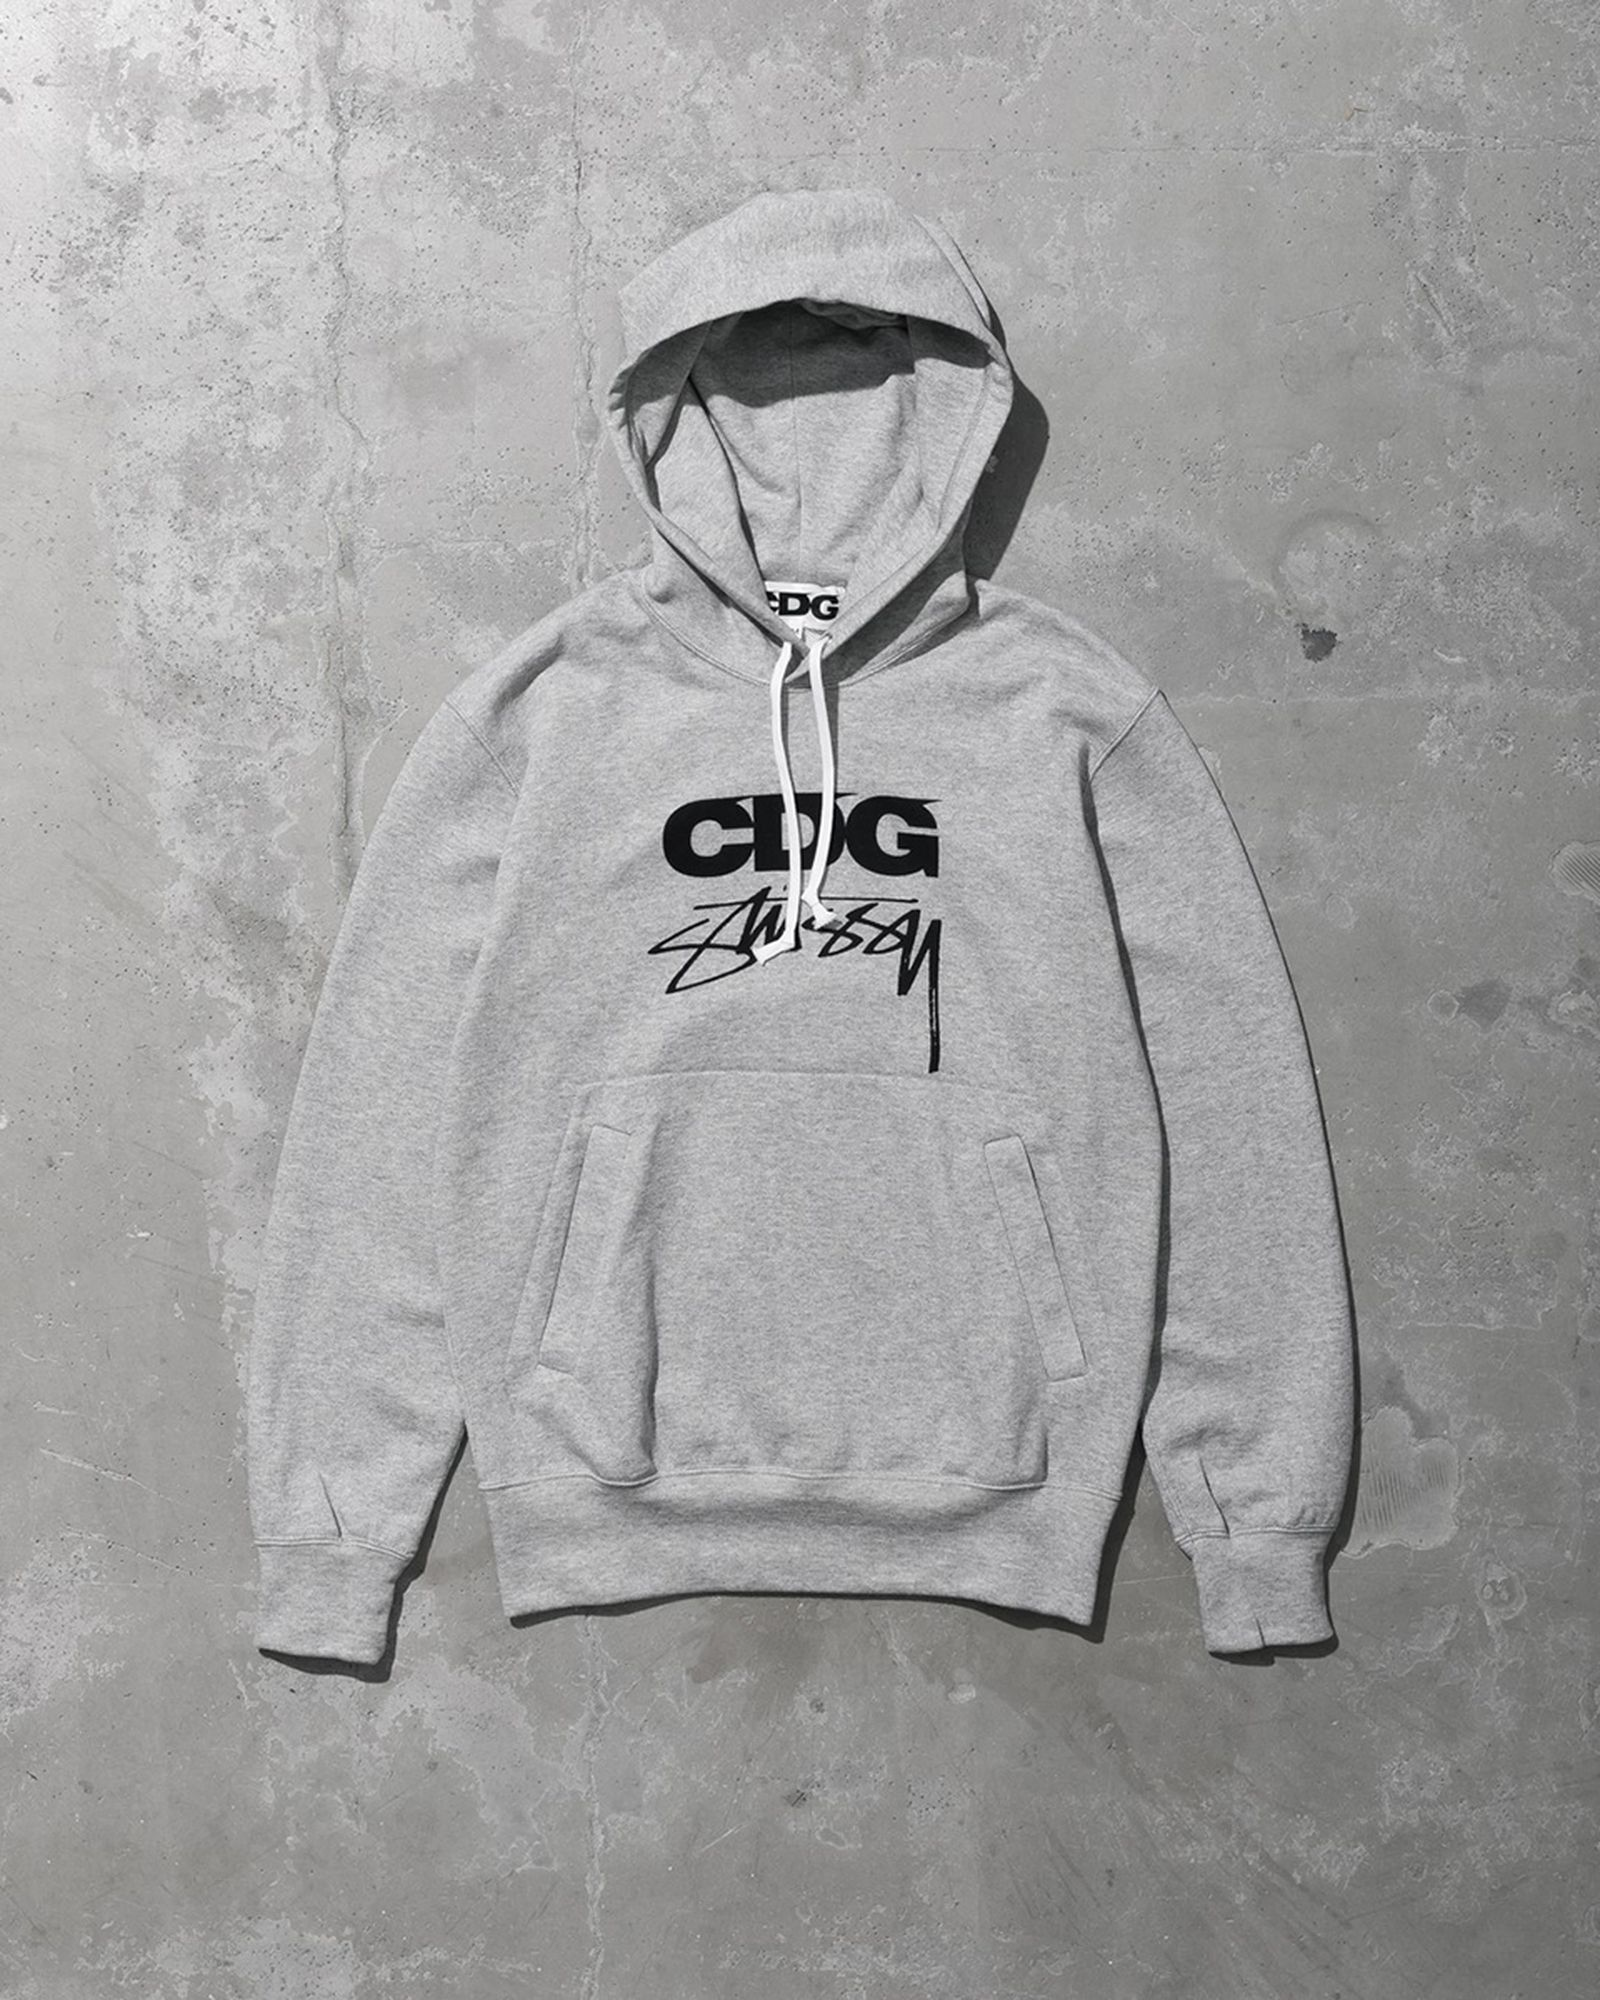 stussy cdg comme des garcons collaboration collection release date info buy hoodie coaches jacket tee shirt fw21 fall winter 2021 buy price